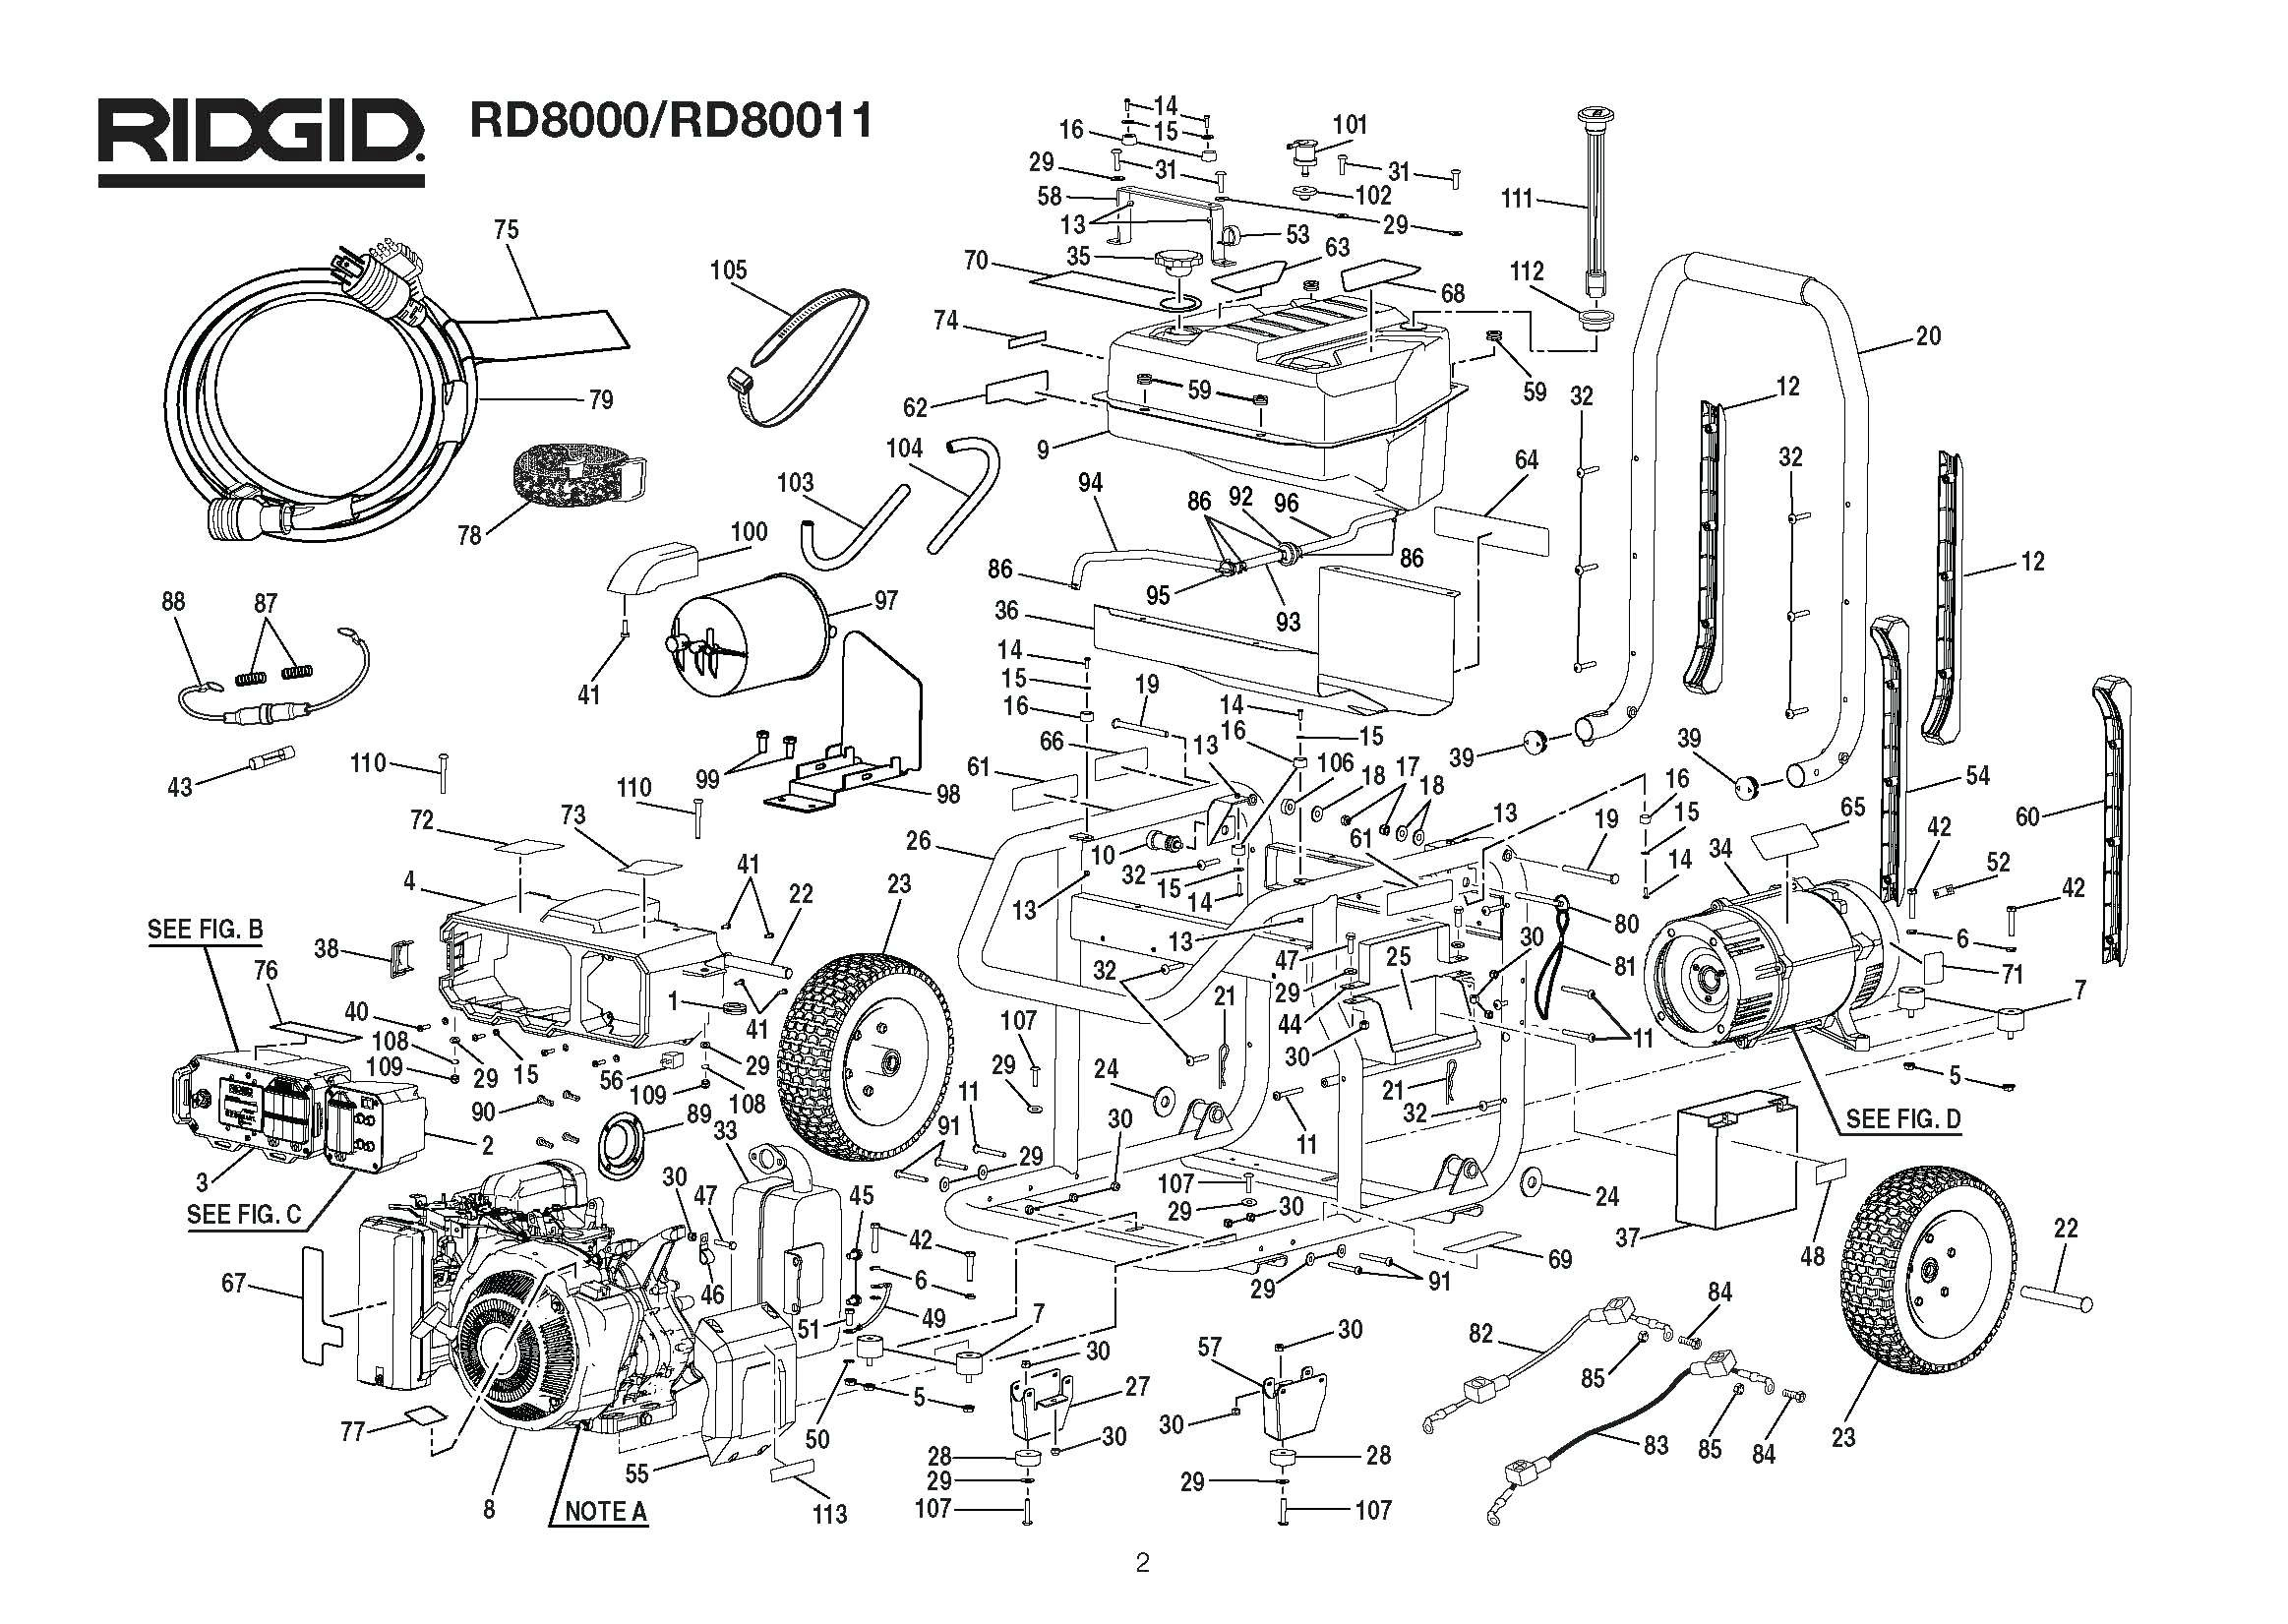 Subaru Engine Parts Diagram Kawasaki Engine Parts Diagrams Fh680v Service Manual Repair B P Of Subaru Engine Parts Diagram Bear Cat Wt24t Echo Bear Cat Wheeled Trimmer 190cc Subaru Push W